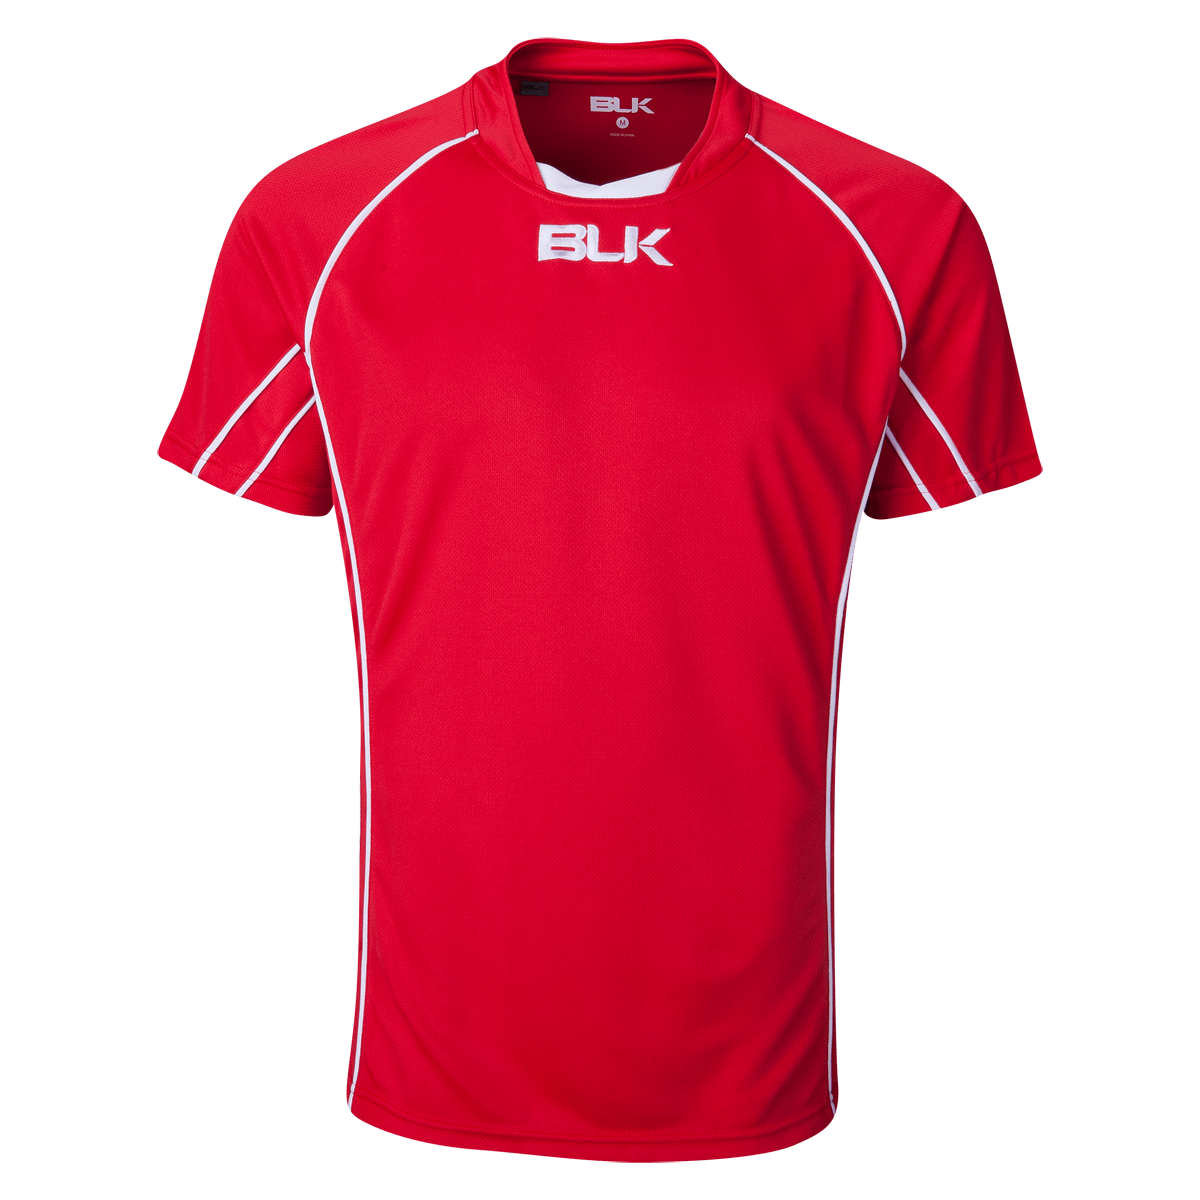 BLK Red Icon Rugby Jersey